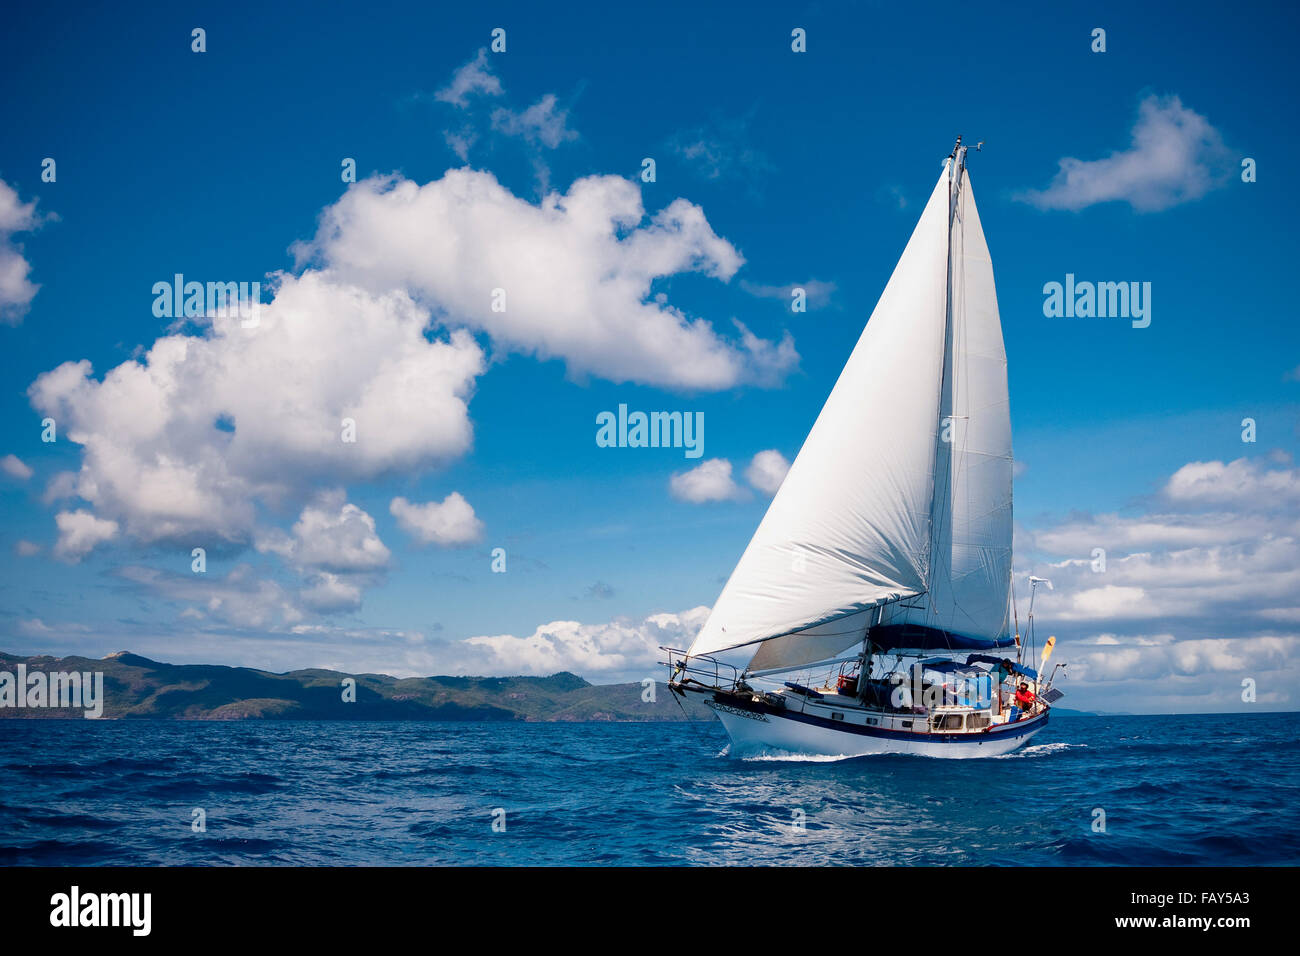 38 foot Sloop 'Ariel' in full sail in the Whitsunday Islands, Queensland, Australia. - Stock Image